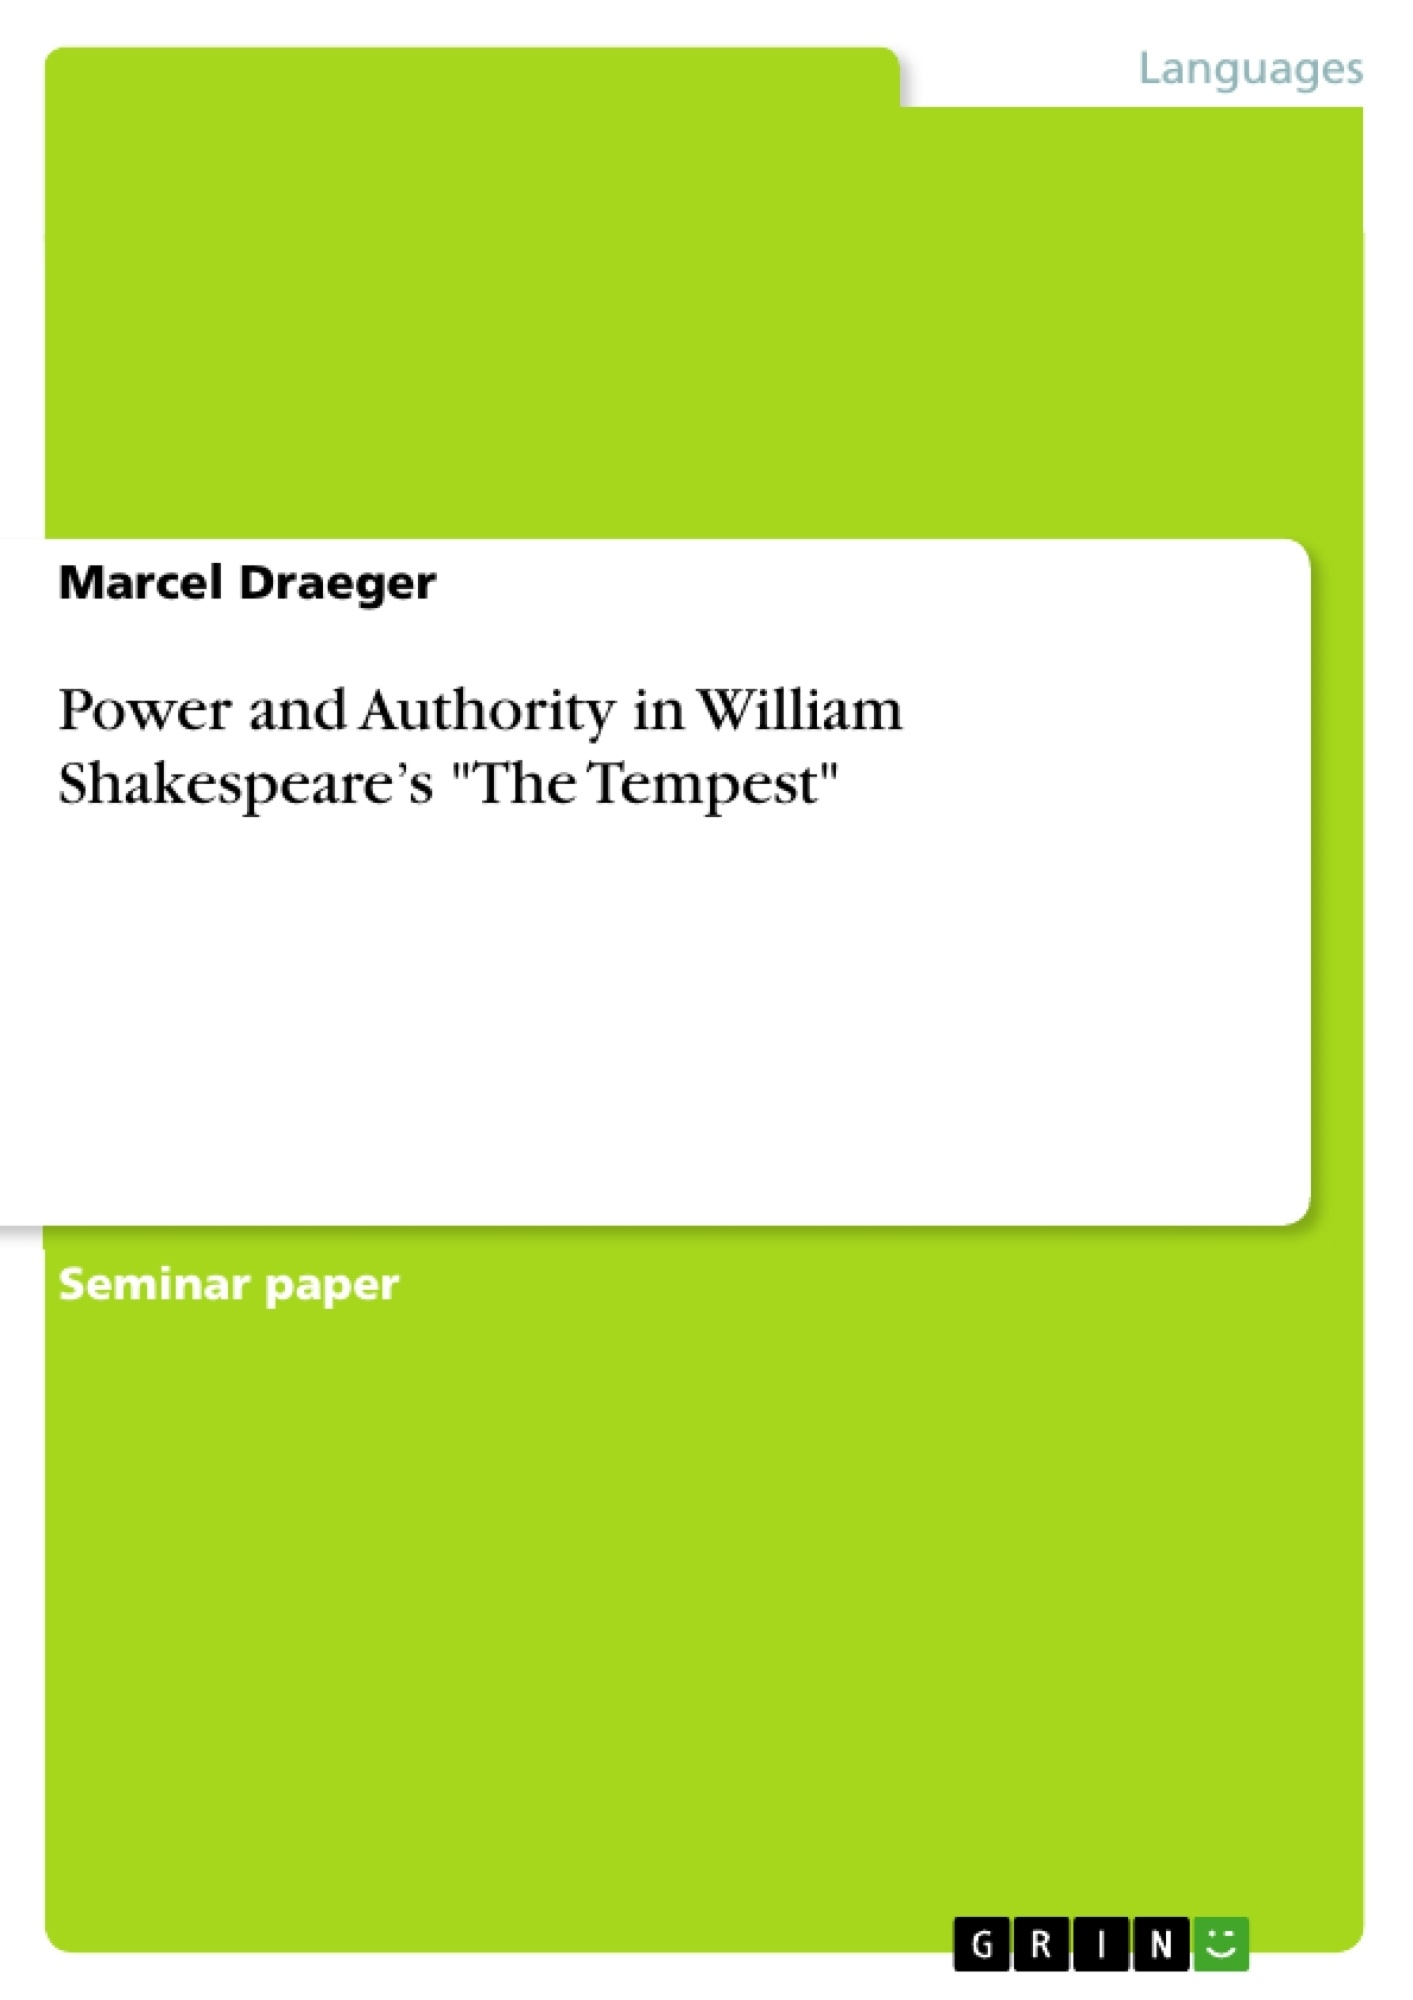 power and authority in william shakespeare s the tempest upload your own papers earn money and win an iphone 7